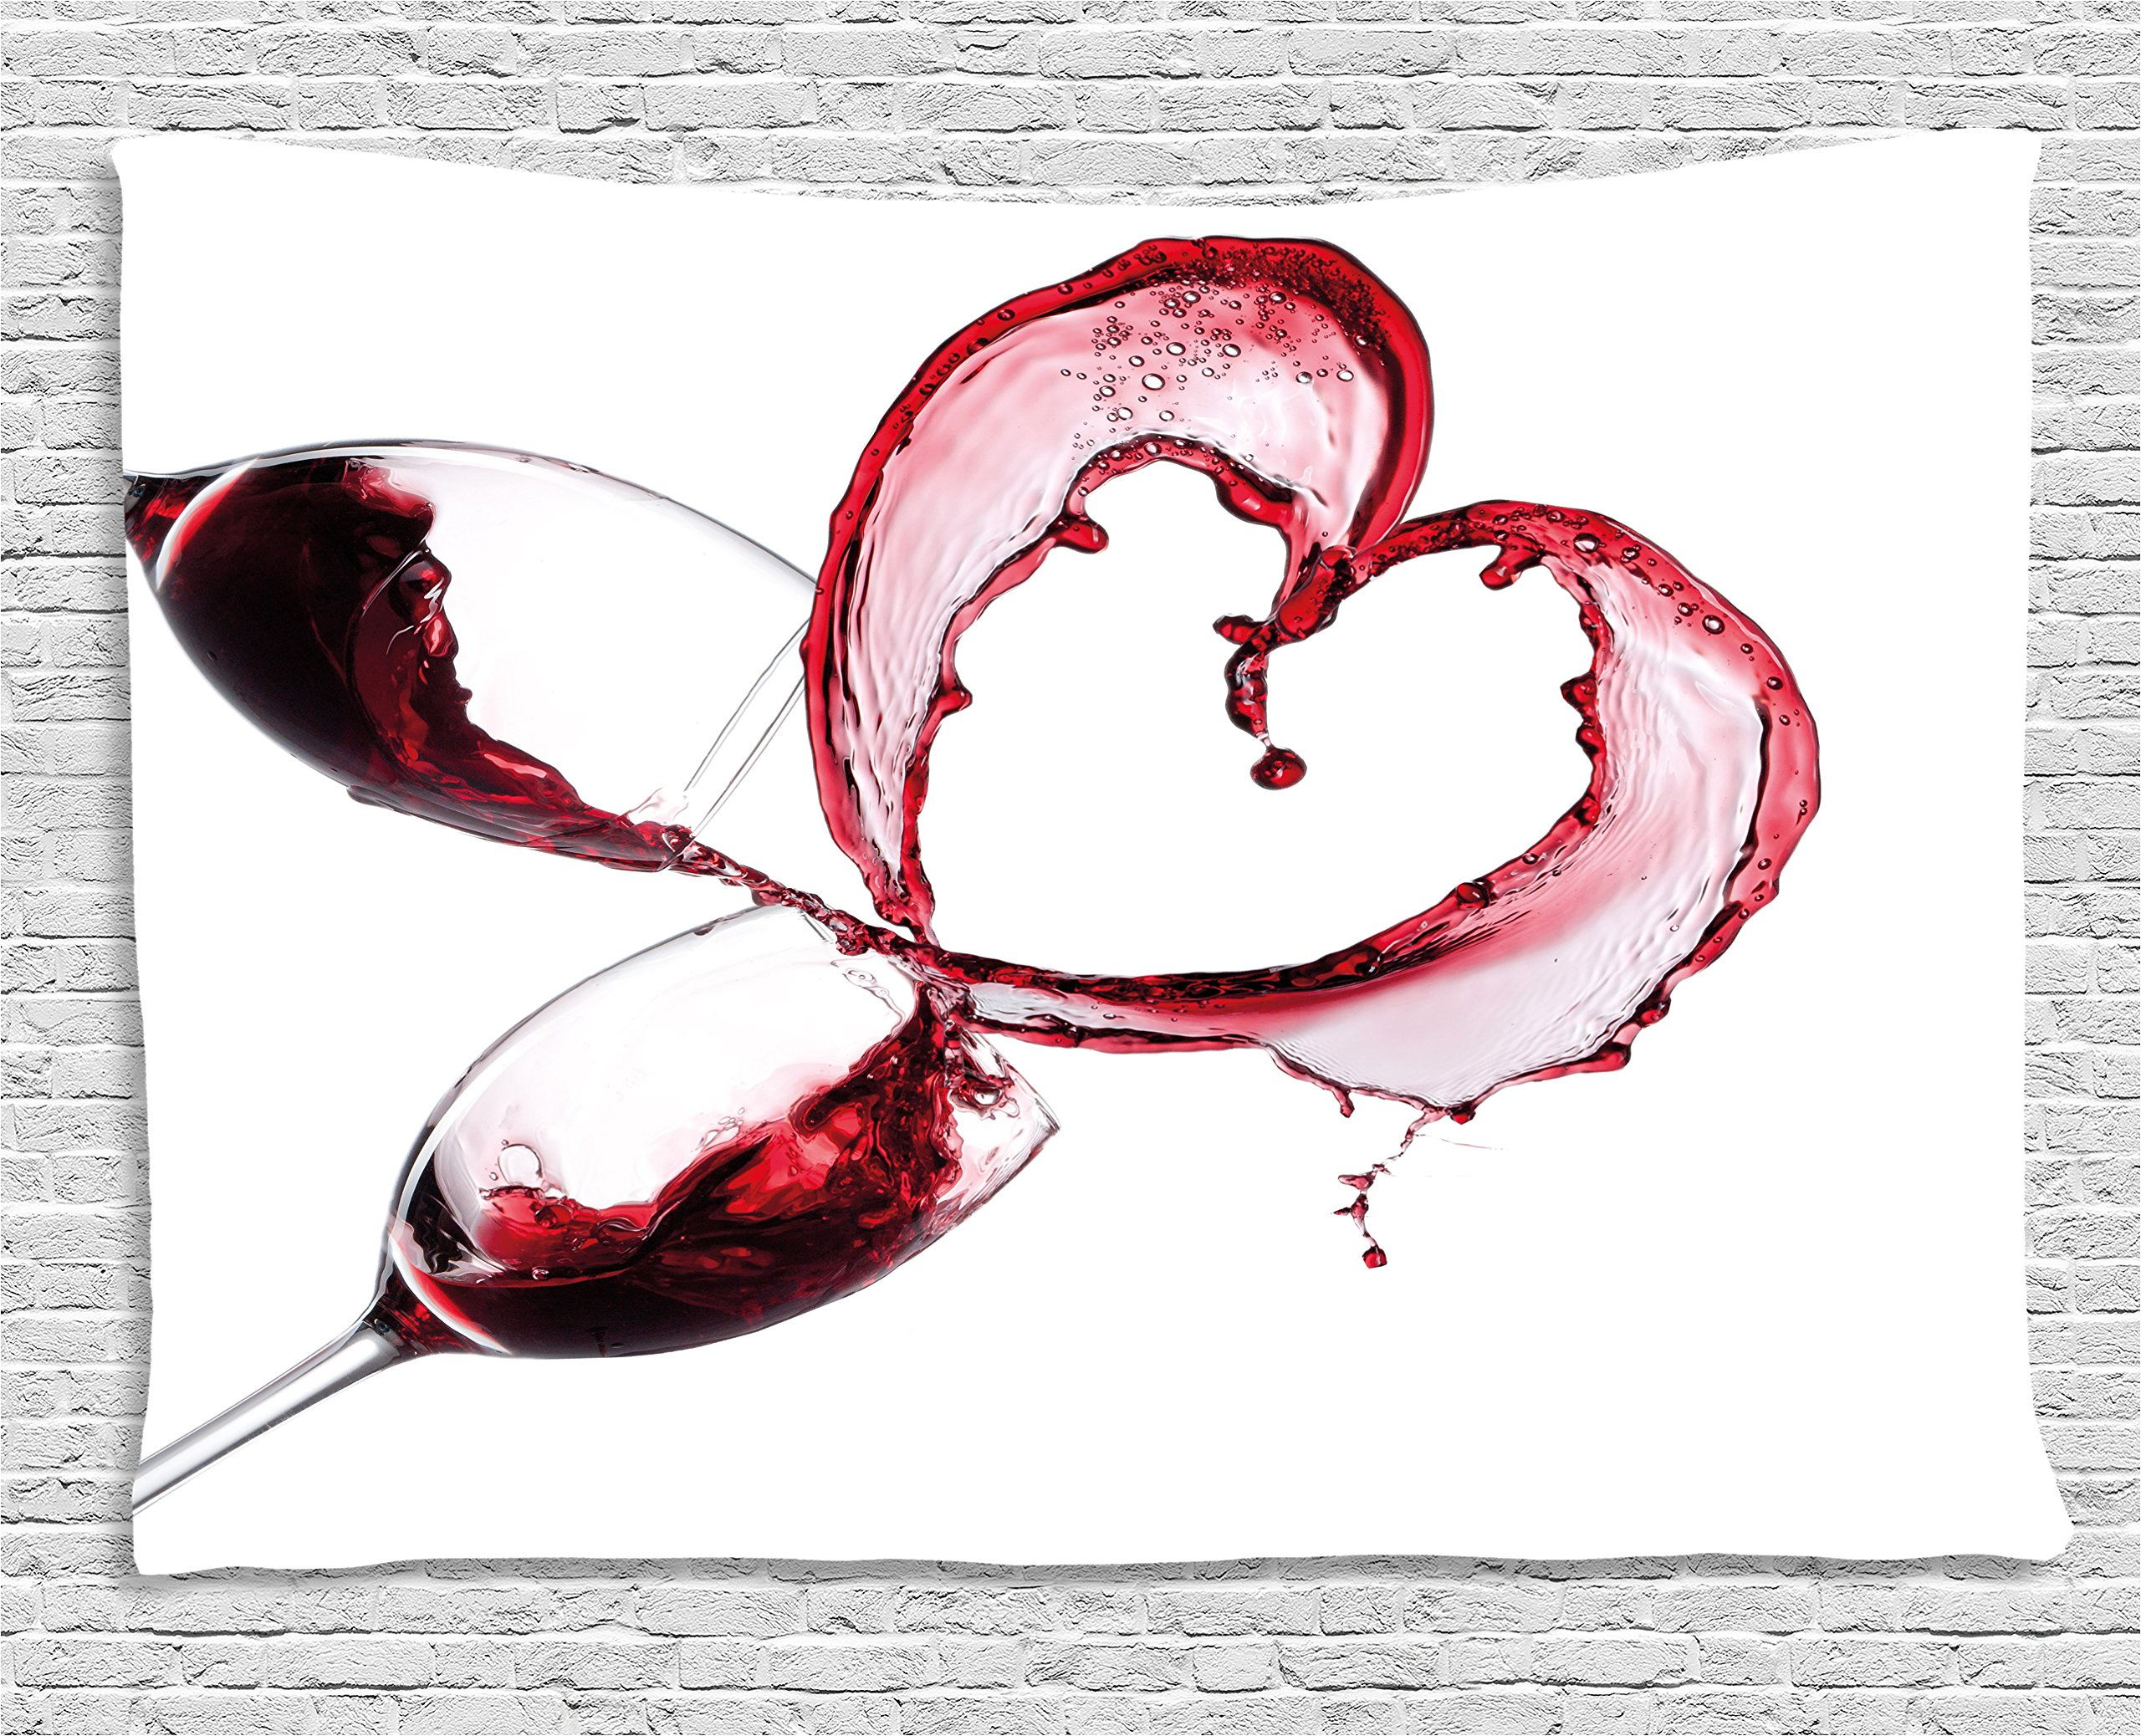 Ambesonne Wine Tapestry, Heart with Spilling Red Wine in Glasses Romantic Love Valentines Day Concept, Wall Hanging for Bedroom Living Room Dorm, 60 W X 40 L inches, Burgundy White Pink